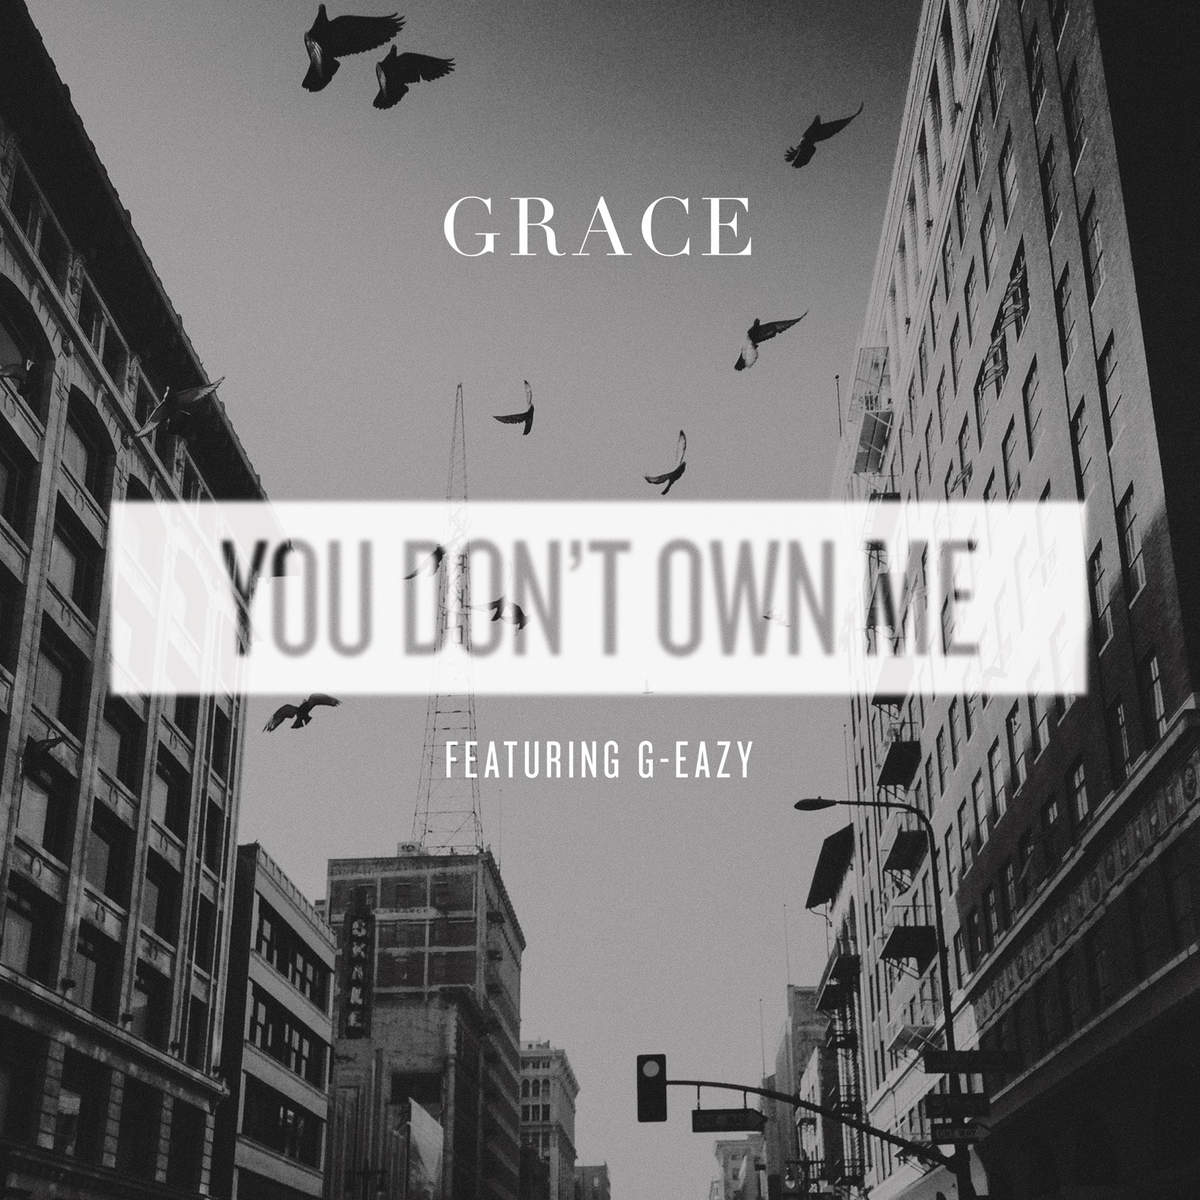 you_dont_own_me_featuring_g-eazy_official_single_cover_by_grace